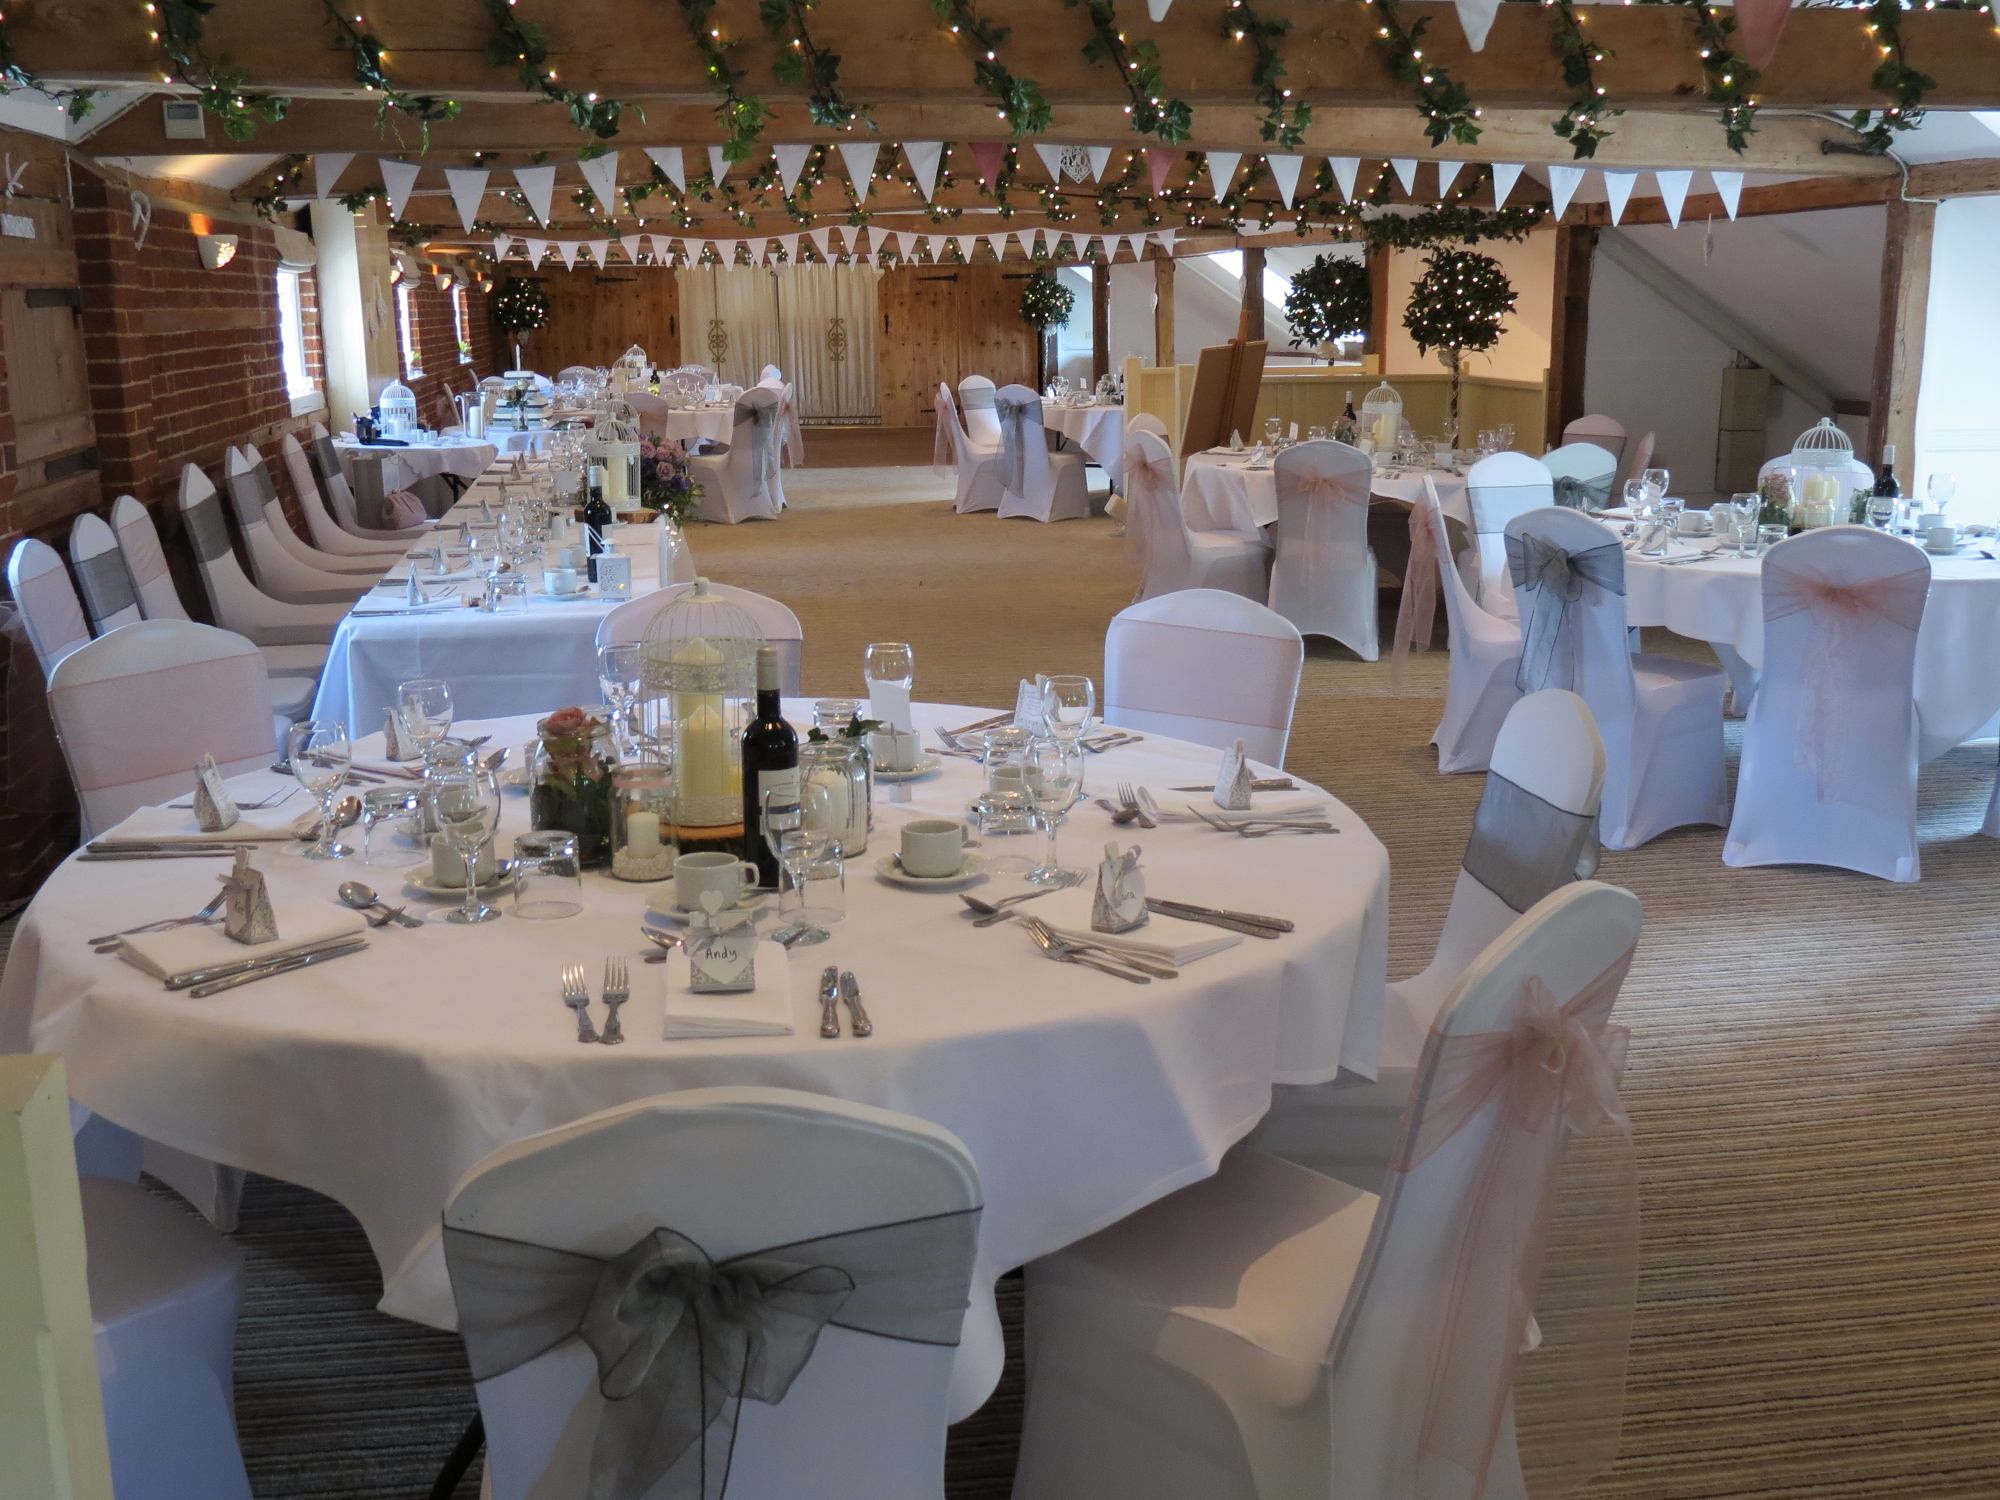 All Inclusive Wedding Packages Uk: All Inclusive Wedding Package